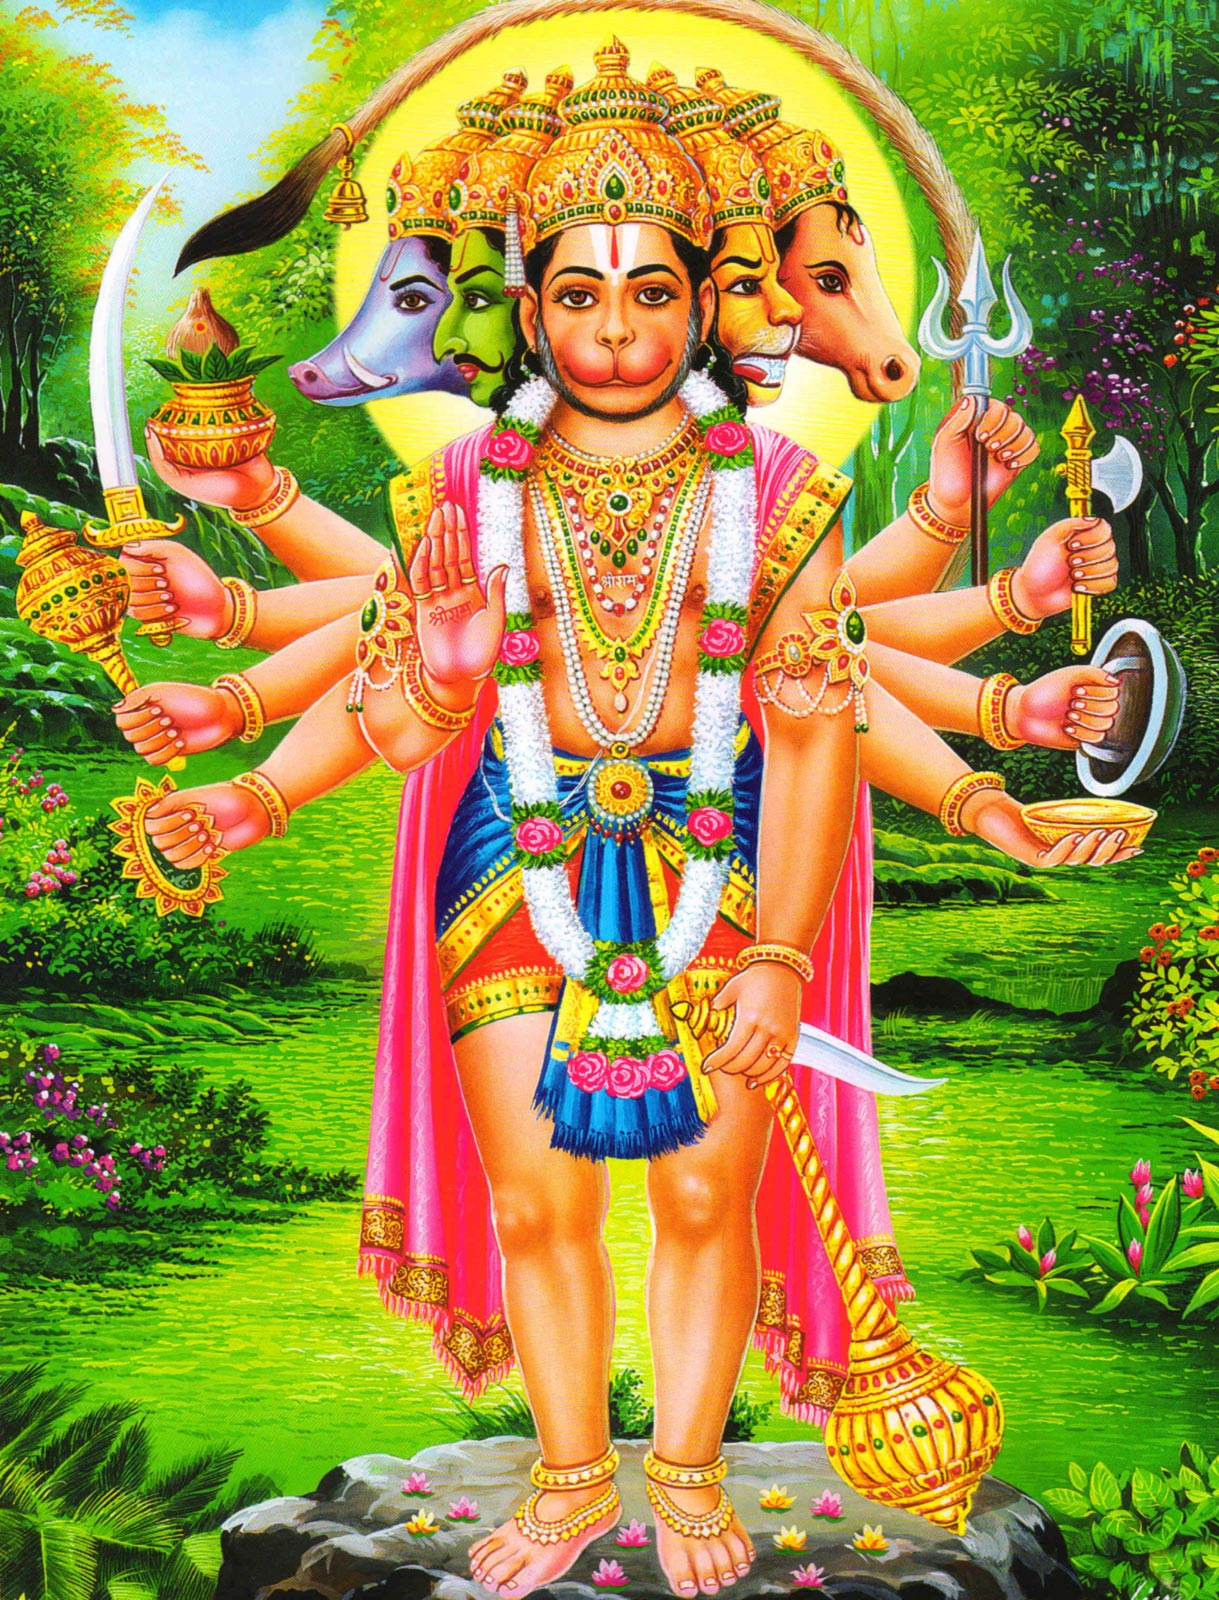 Pics Photos - Hanuman Ji Rama Sita Hanuman Images Hanuman Carrying Ram